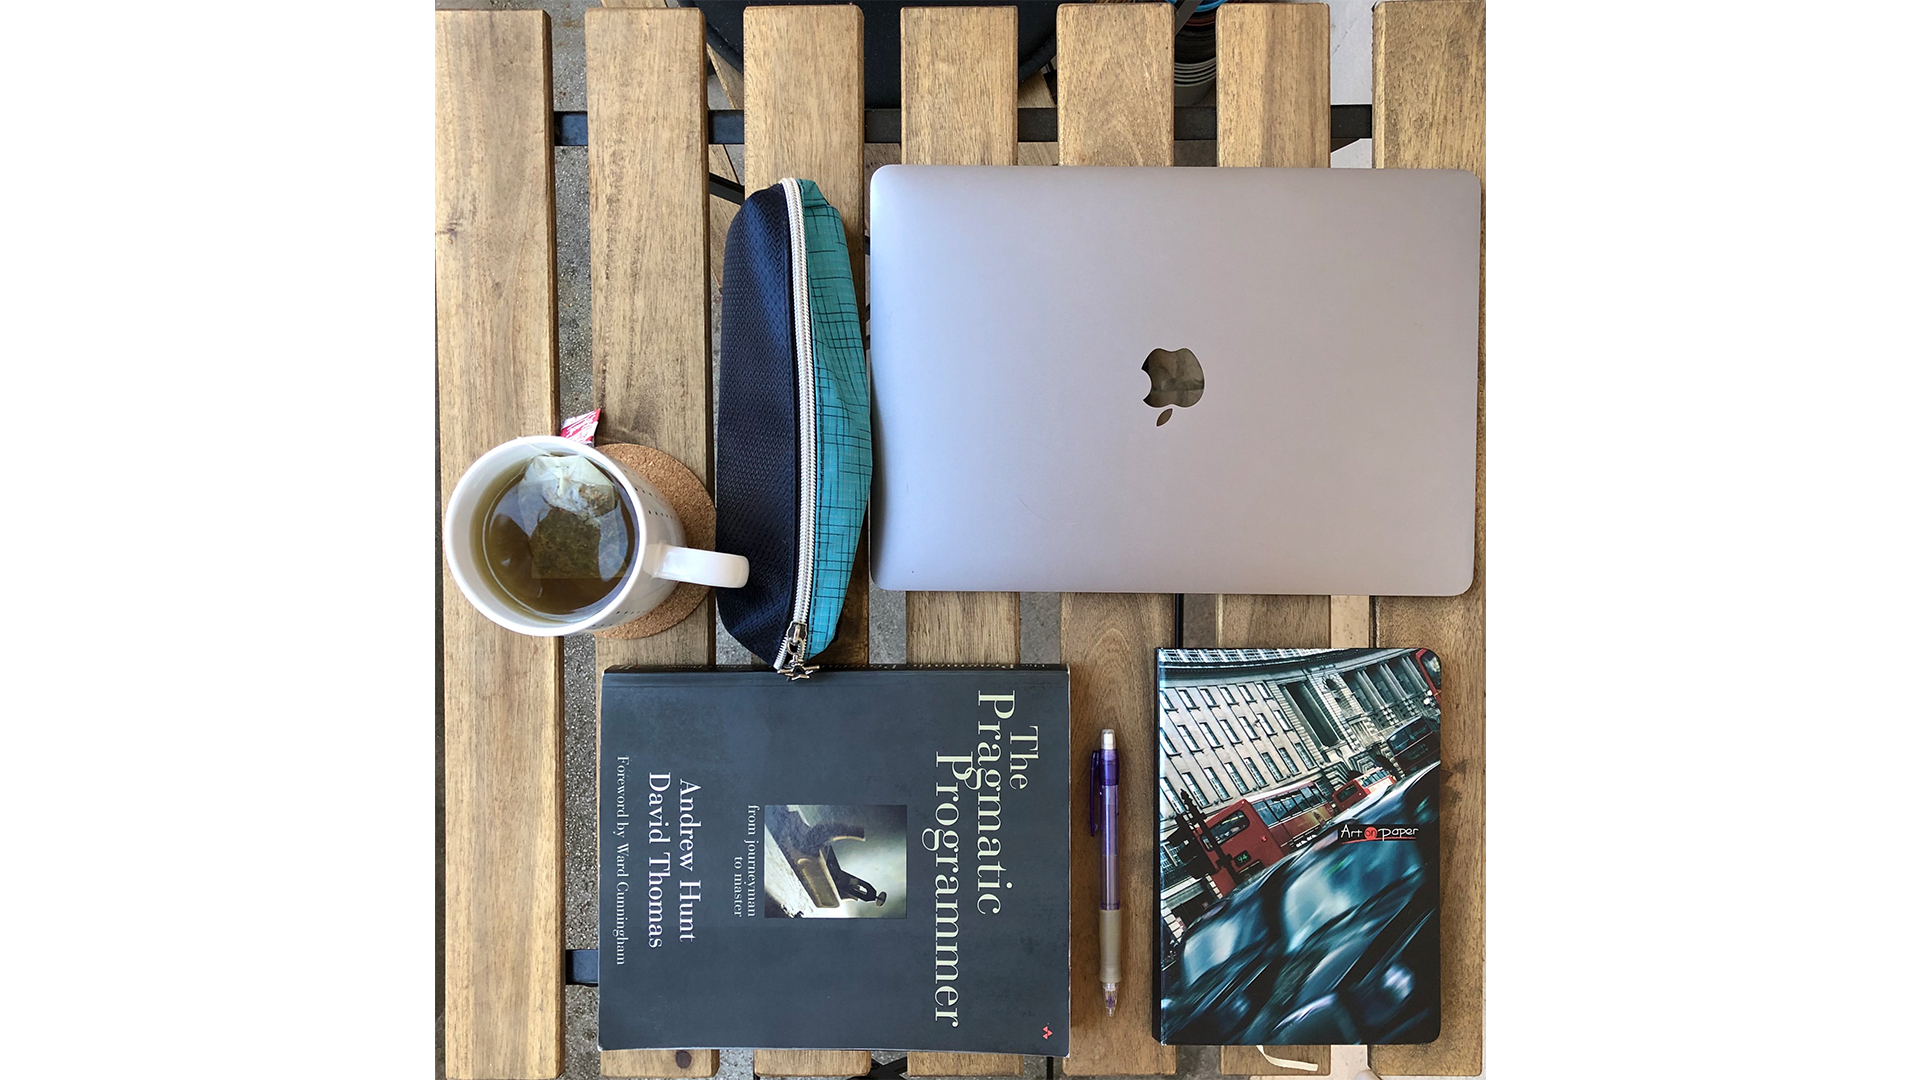 Reading technical books - macbook, notebook, cofffee and pens on a table